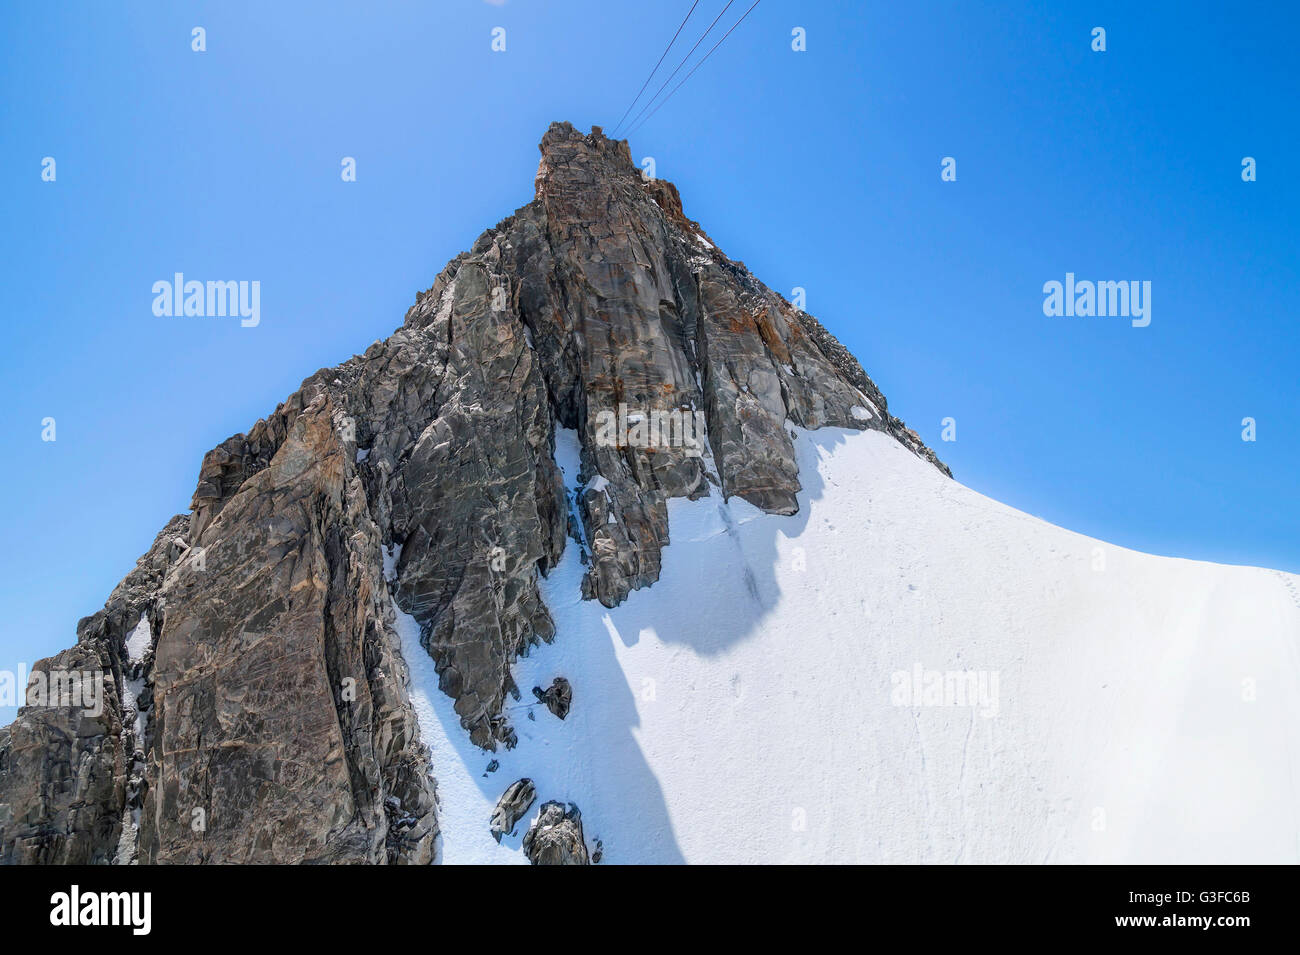 Pointe Helbronner mountain - 3462 m, Monte Bianco massif in Alps (Mont Blanc), Courmayeur ,Aosta Valley ,Italy - Stock Image